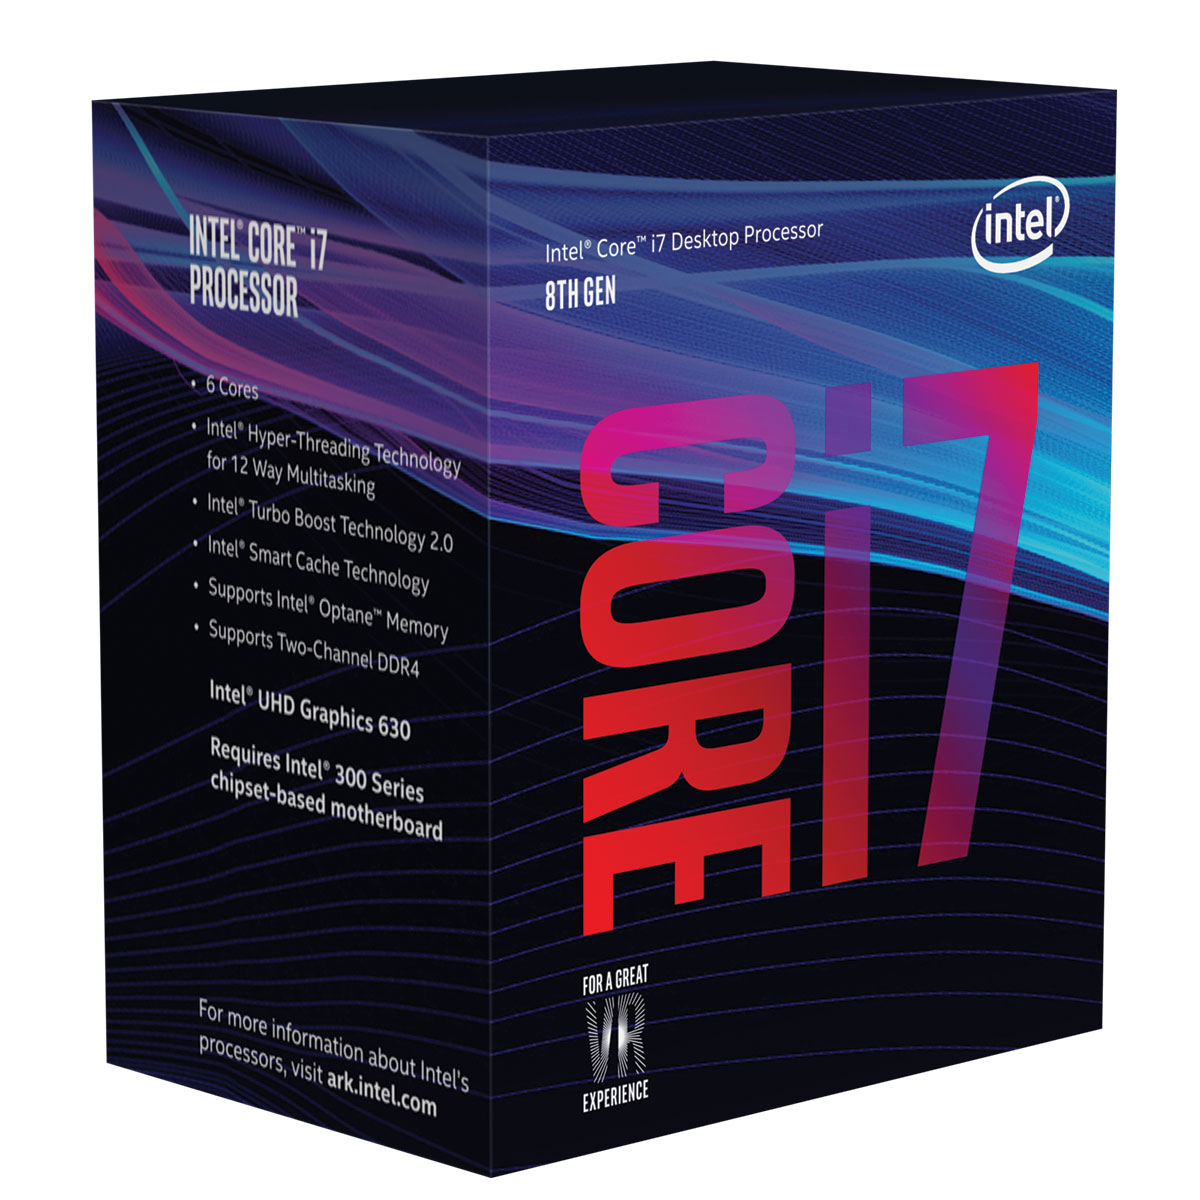 Intel Core i7-8700 (3.2 GHz) Processeur 6-Core Socket 1151 Cache L3 12 Mo  Intel UHD Graphics 630 0.014 micron (version boîte - garantie Intel 3 ans) f59726a494ab